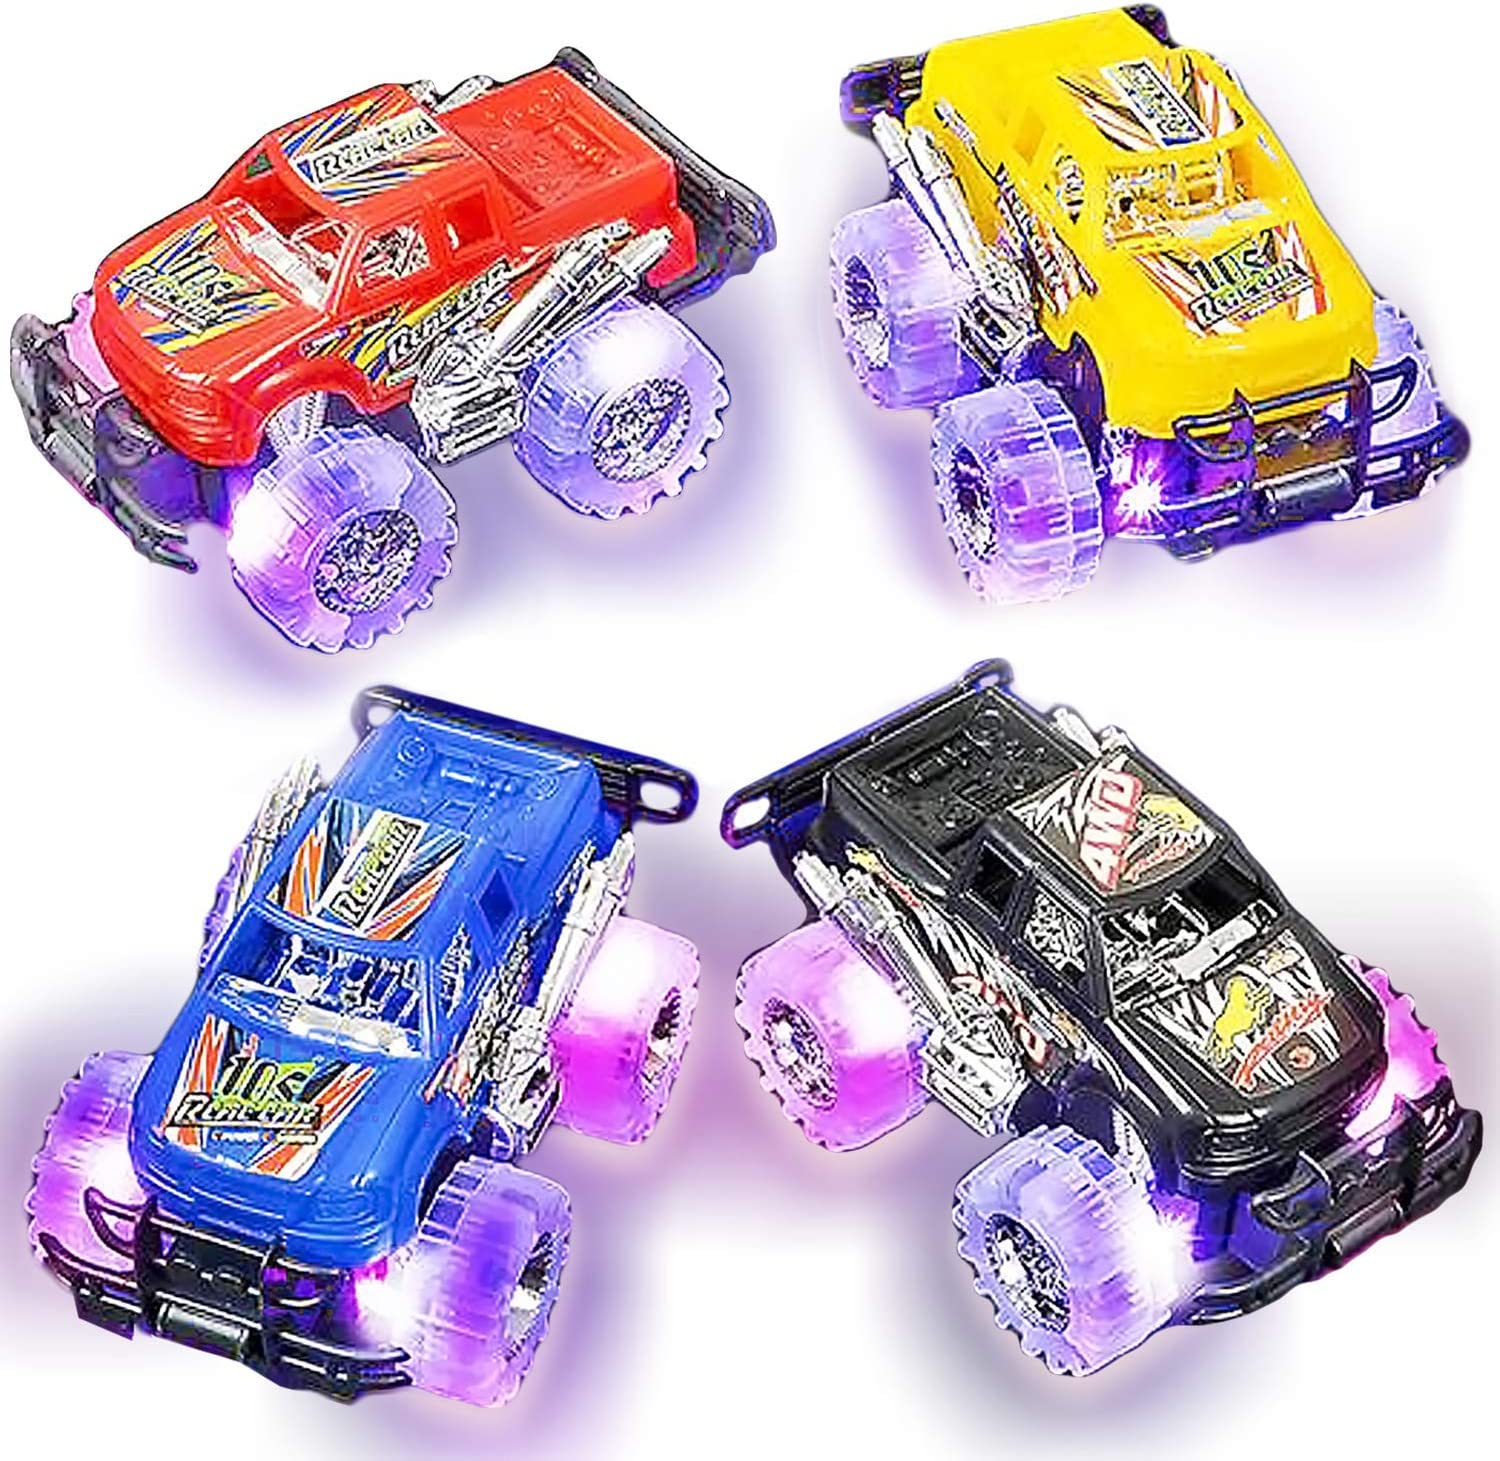 Amazon Com Light Up Monster Truck Set For Boys And Girls By Artcreativity Set Includes 2 6 Inch Monster Trucks With Beautiful Flashing Led Tires Push N Go Toy Cars Best